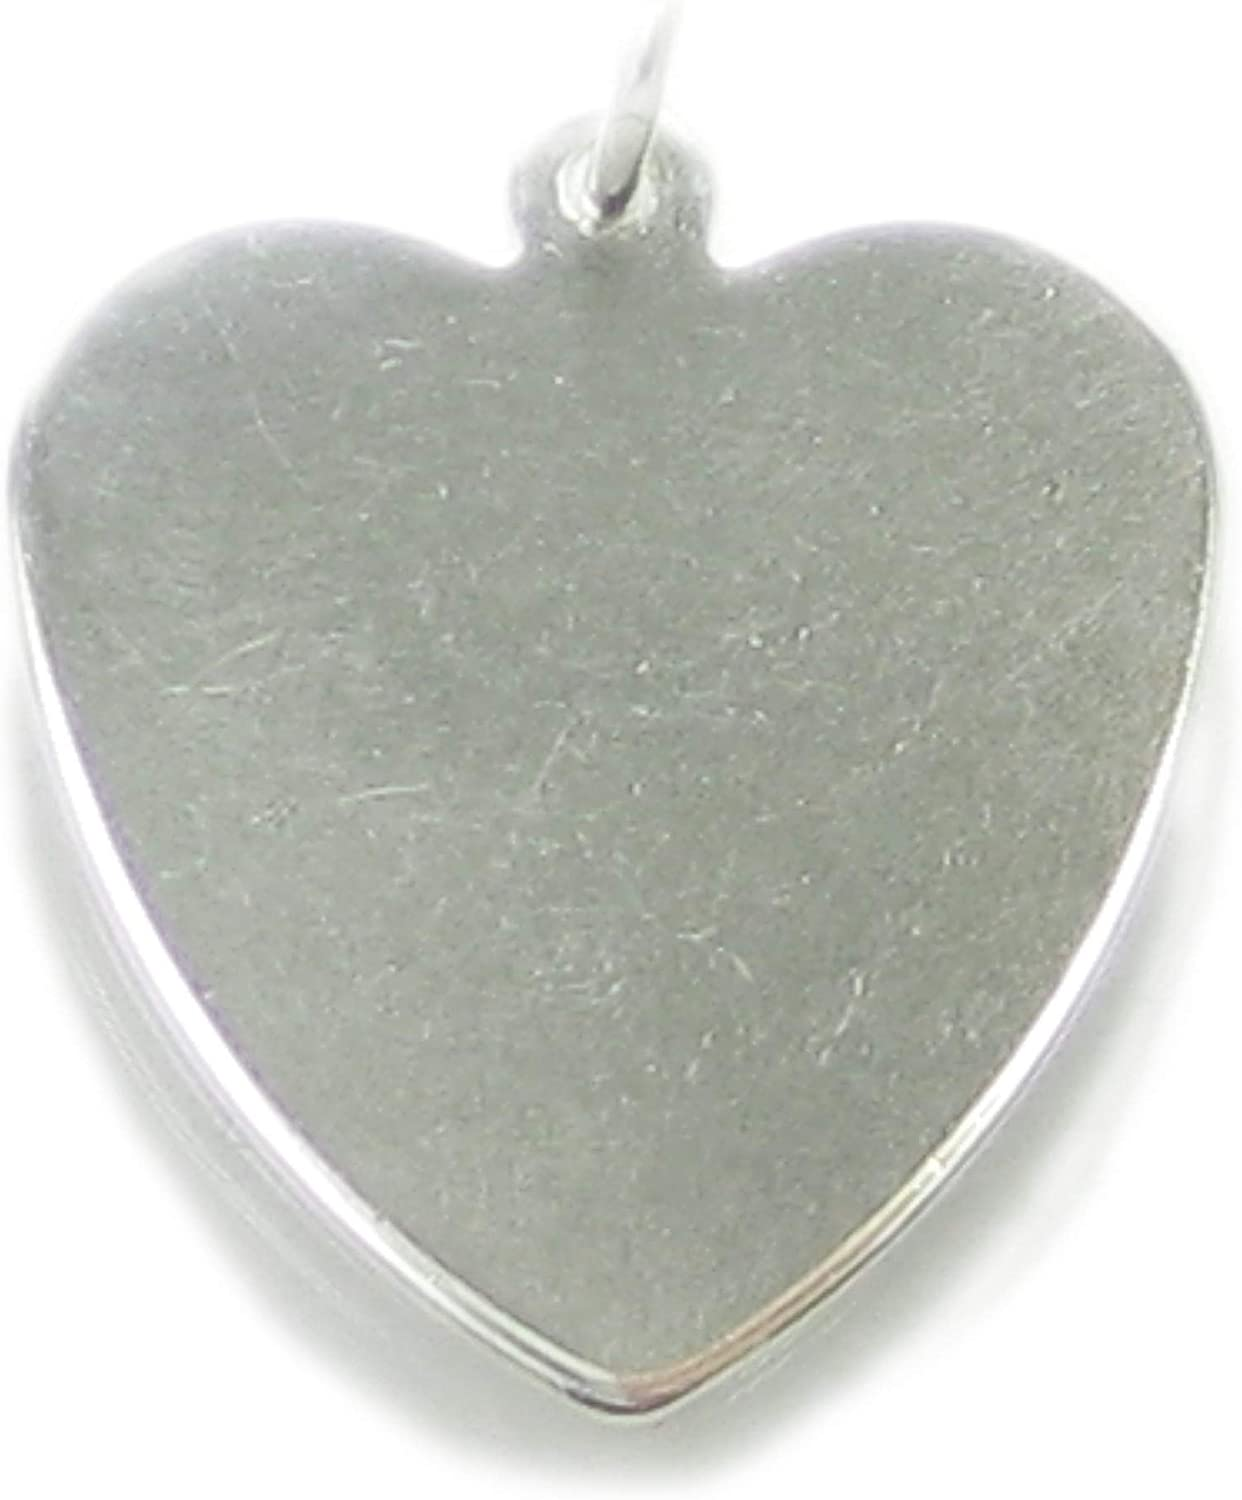 18mm x 14mm Solid 925 Sterling Silver Engravable Heart Front//Back Disc Charm Pendant